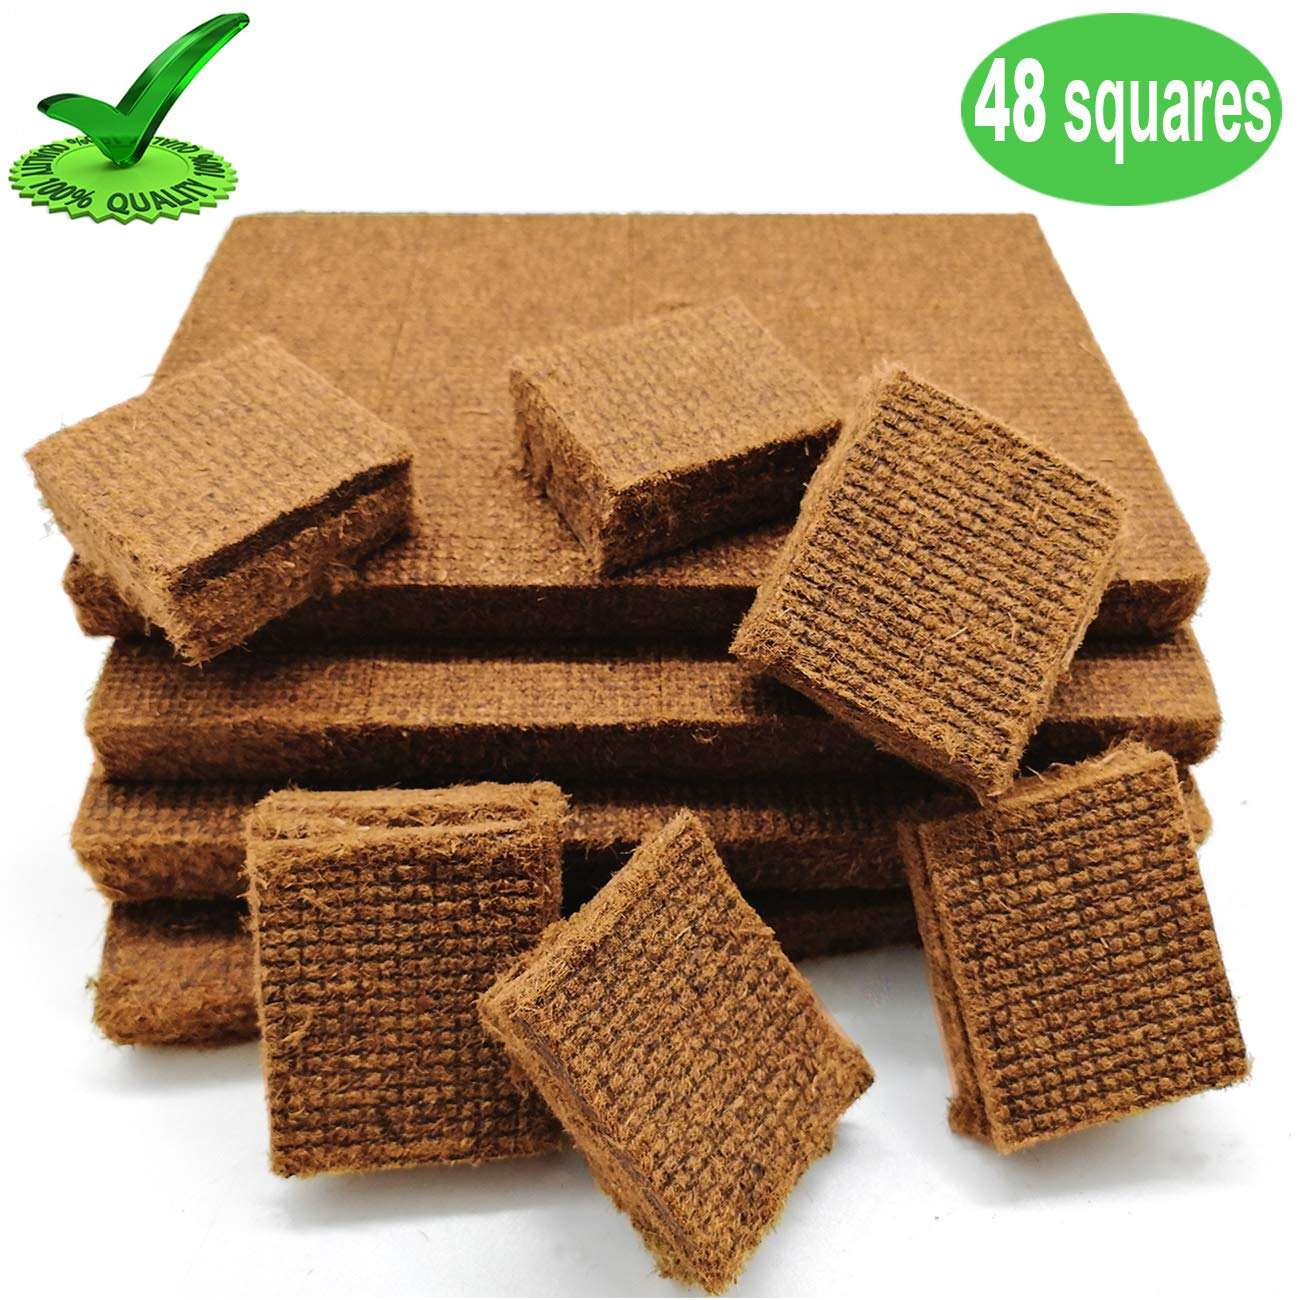 Senneny 100% All Natural Charcoal Starters 48 Squares Fire Starter for BBQ Grill Smoker Kamados Barbecue